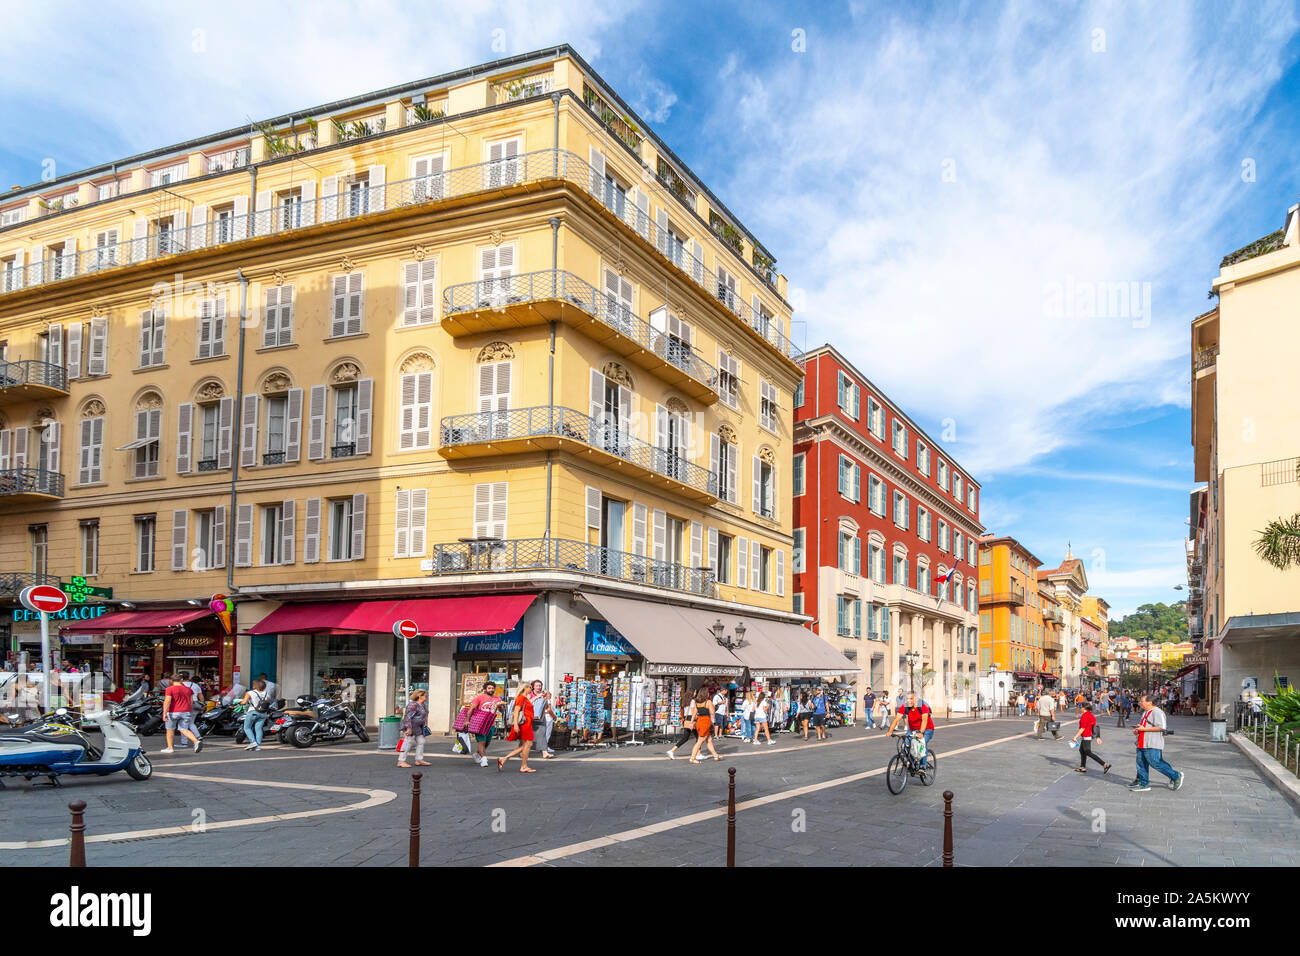 Tourists enjoy a wide colorful street of shops, markets and cafes leading to Old Town in the Mediterranean city of Nice, France. Stock Photo